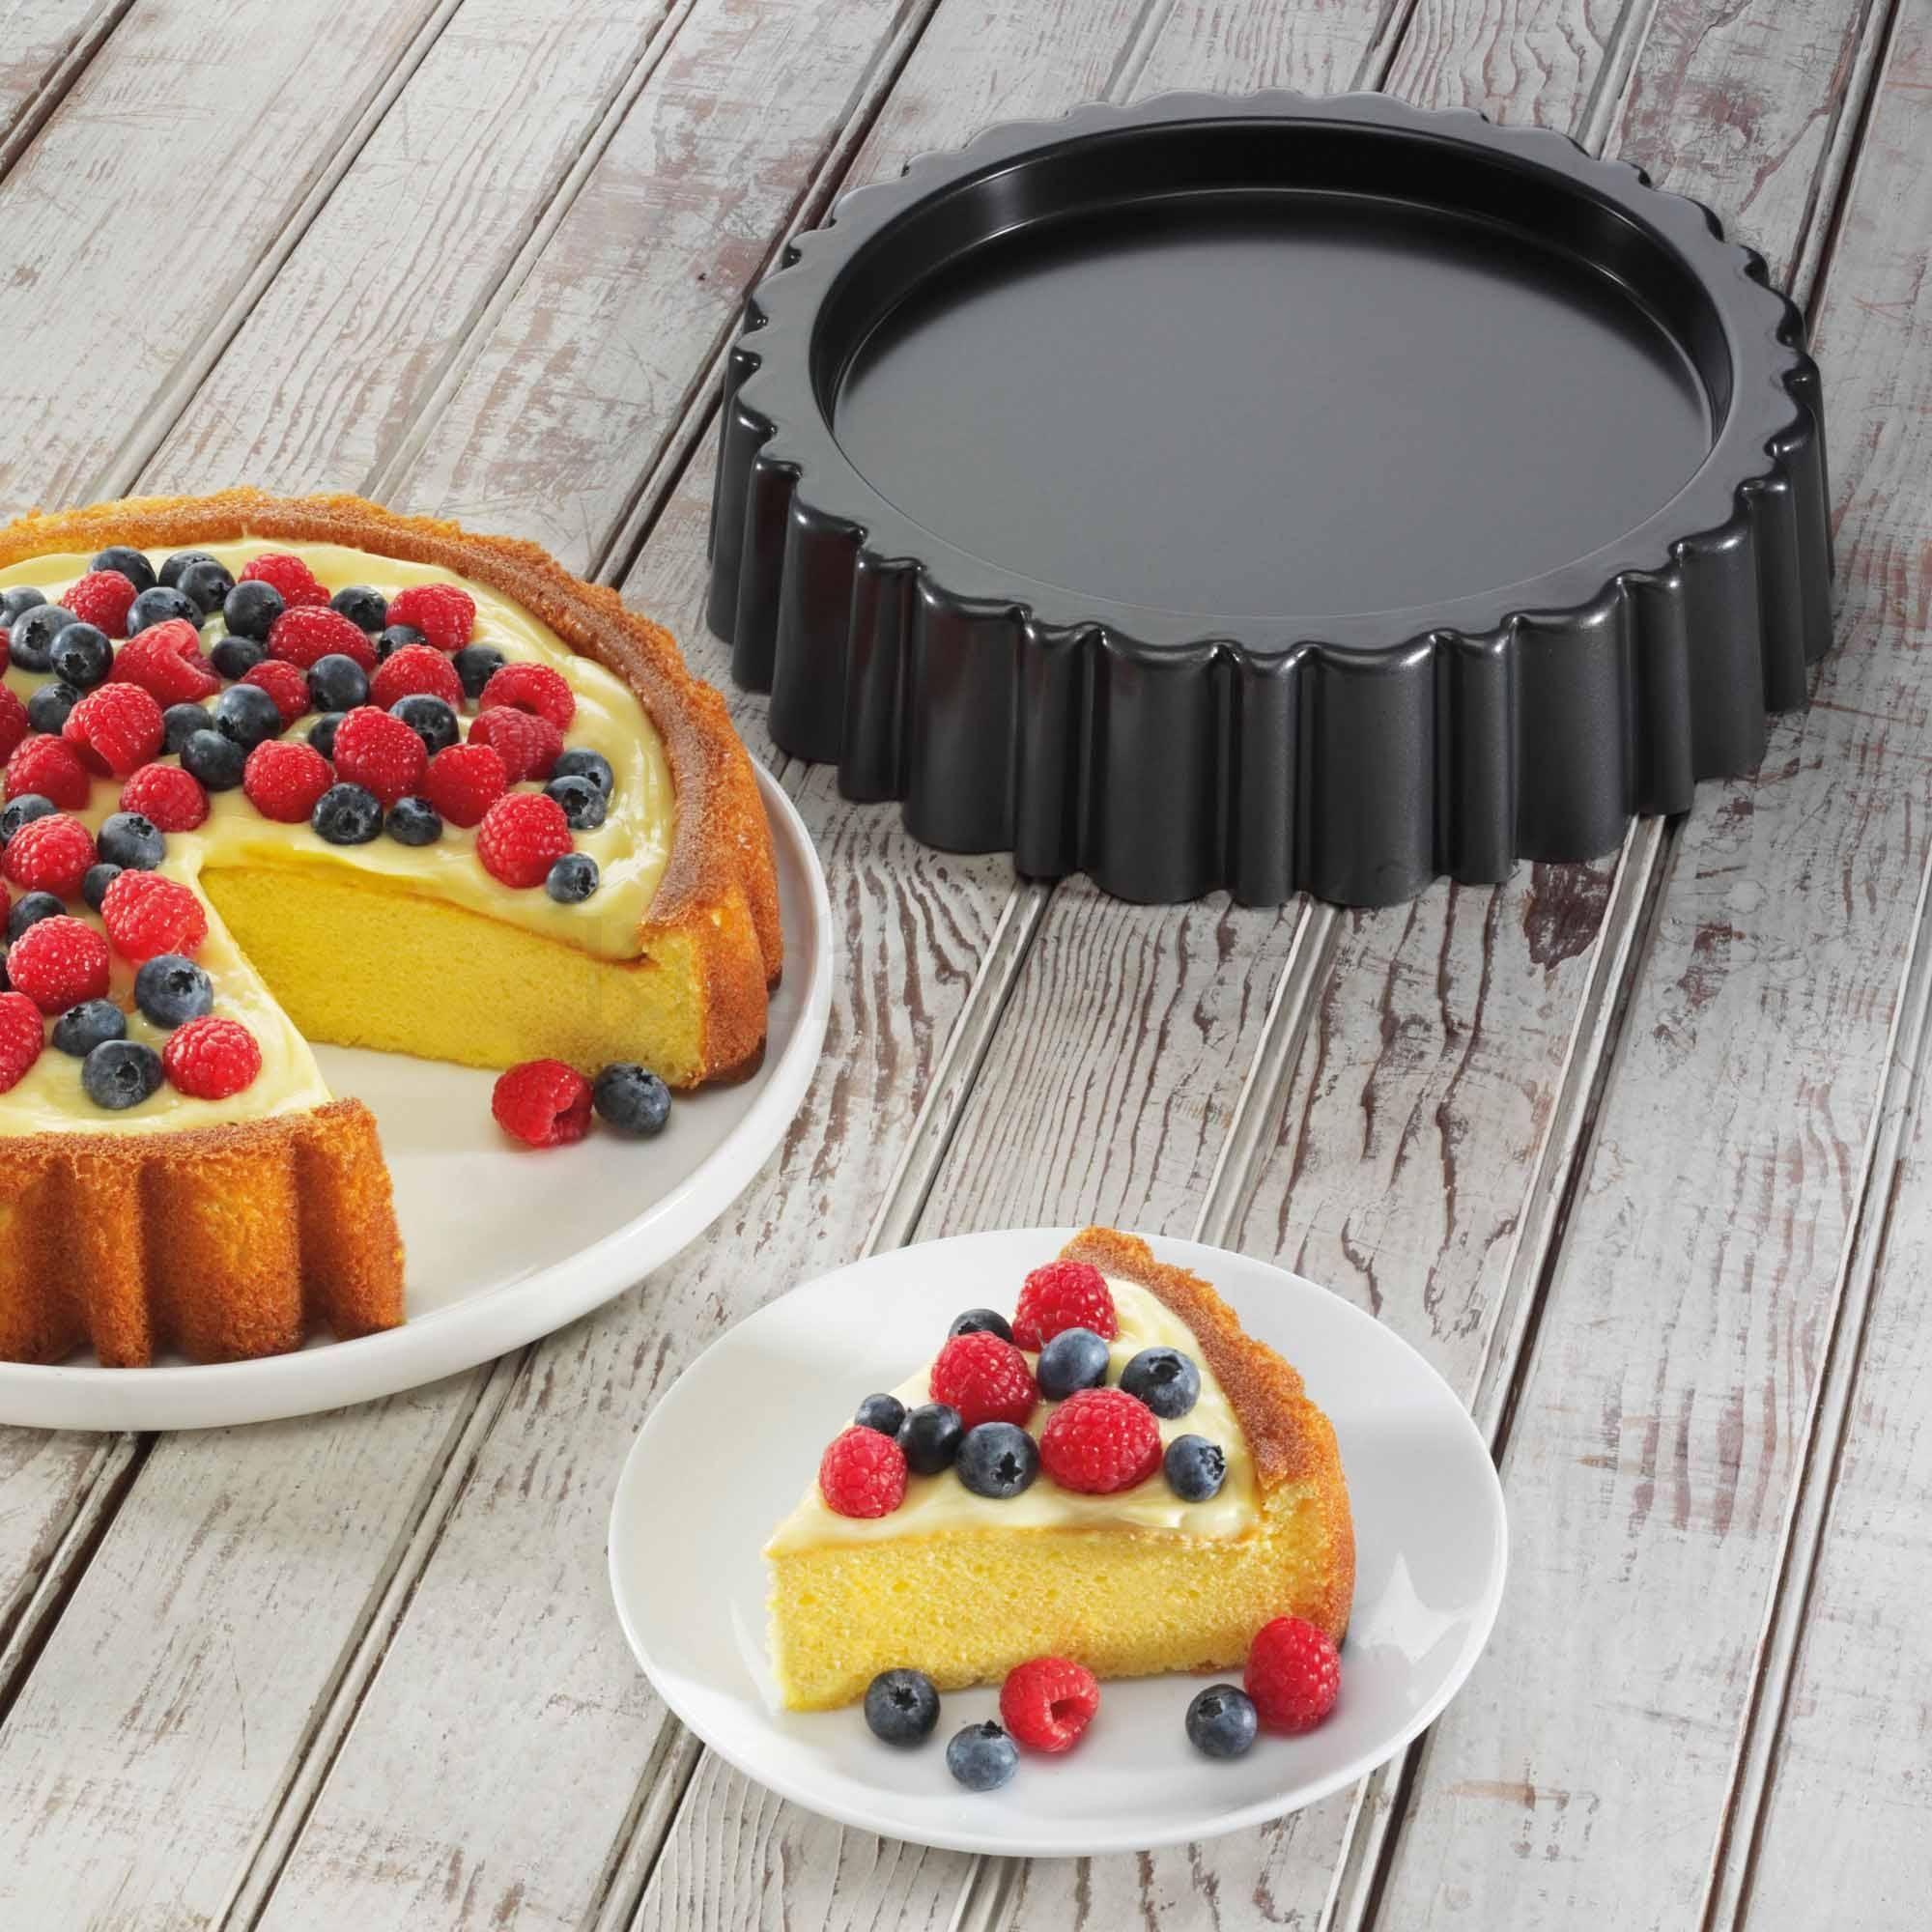 Mary Ann cake with cake pan